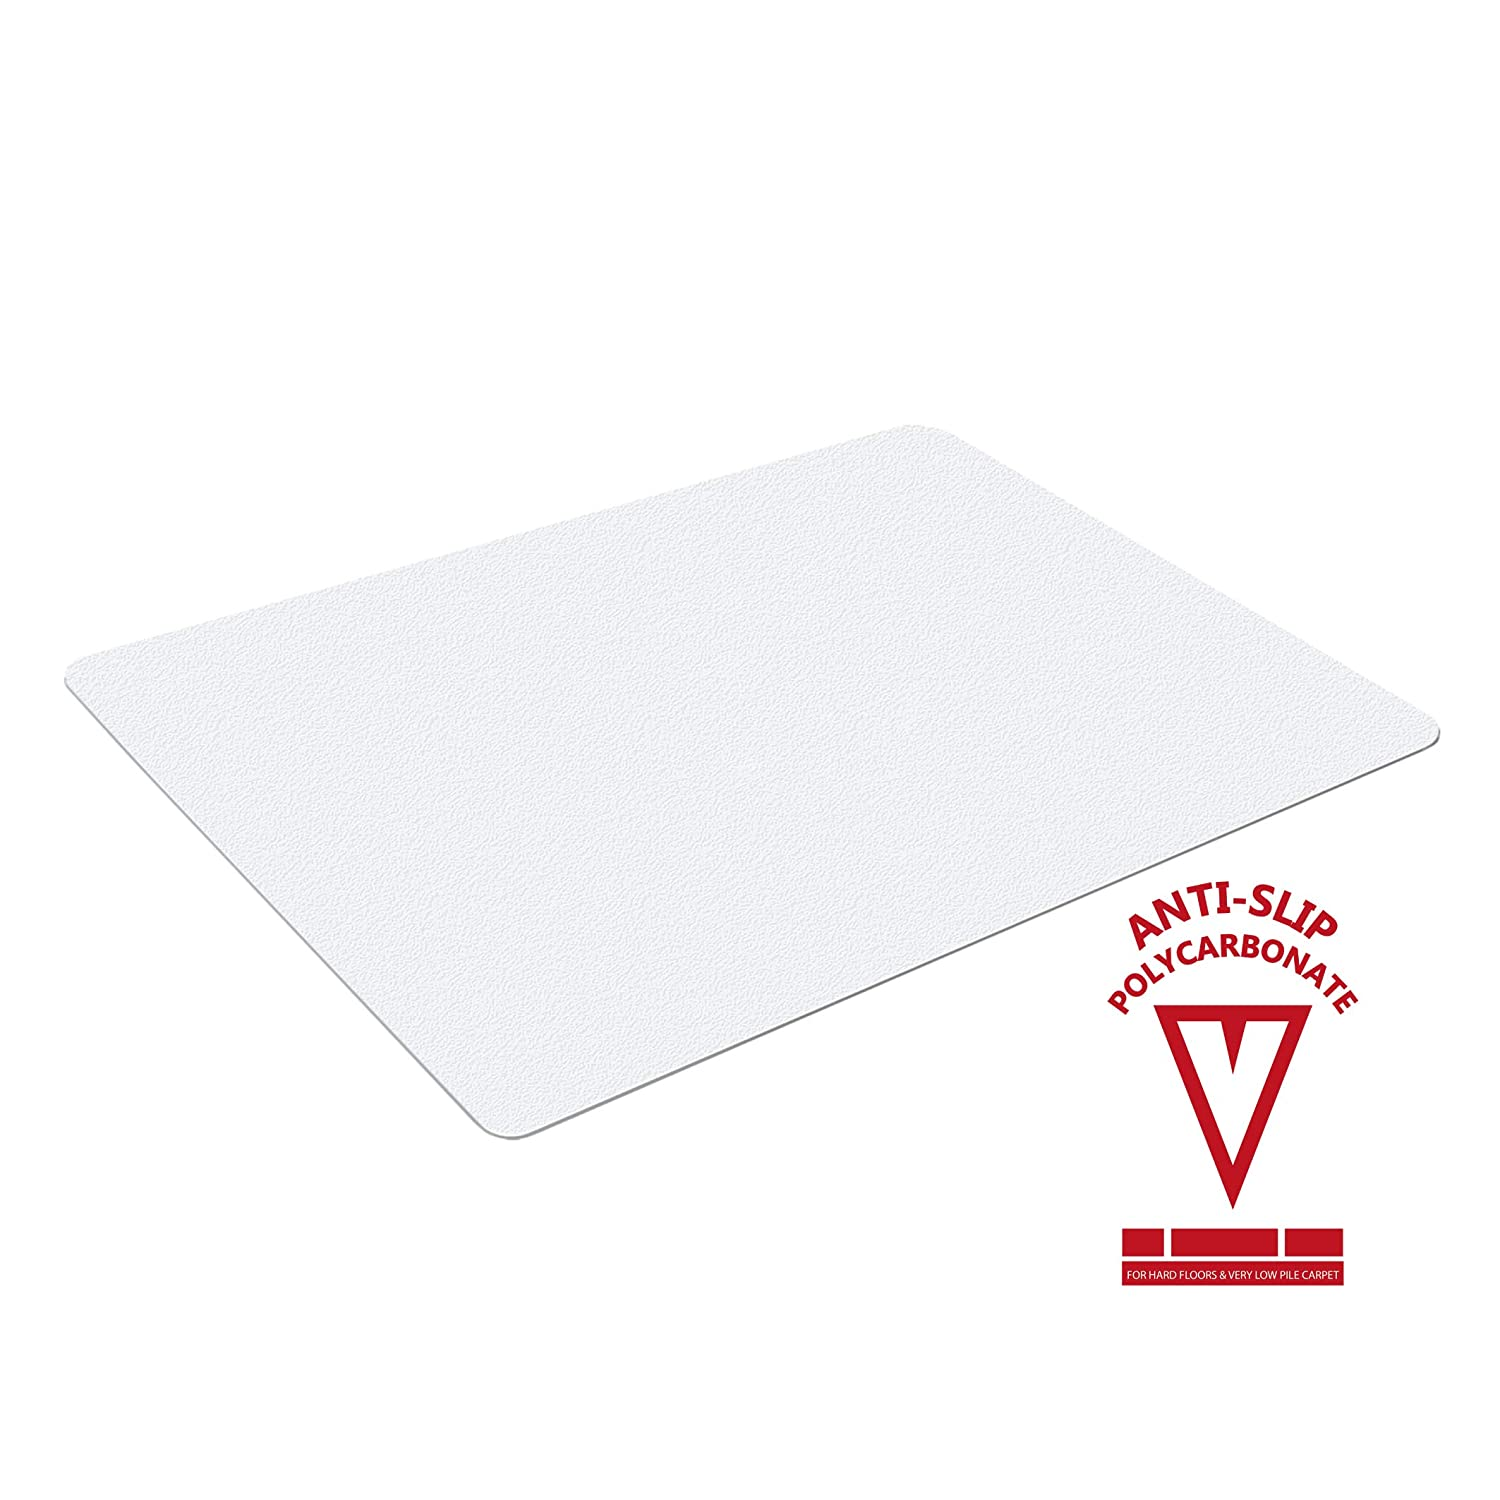 Marvelux 35 x 47 Polycarbonate Chair Mat for Hard Floors and Very Low Pile Carpets with Anti Slip Backing for High Adherence Rectangular Hardwood Floor Protector Shipped Flat